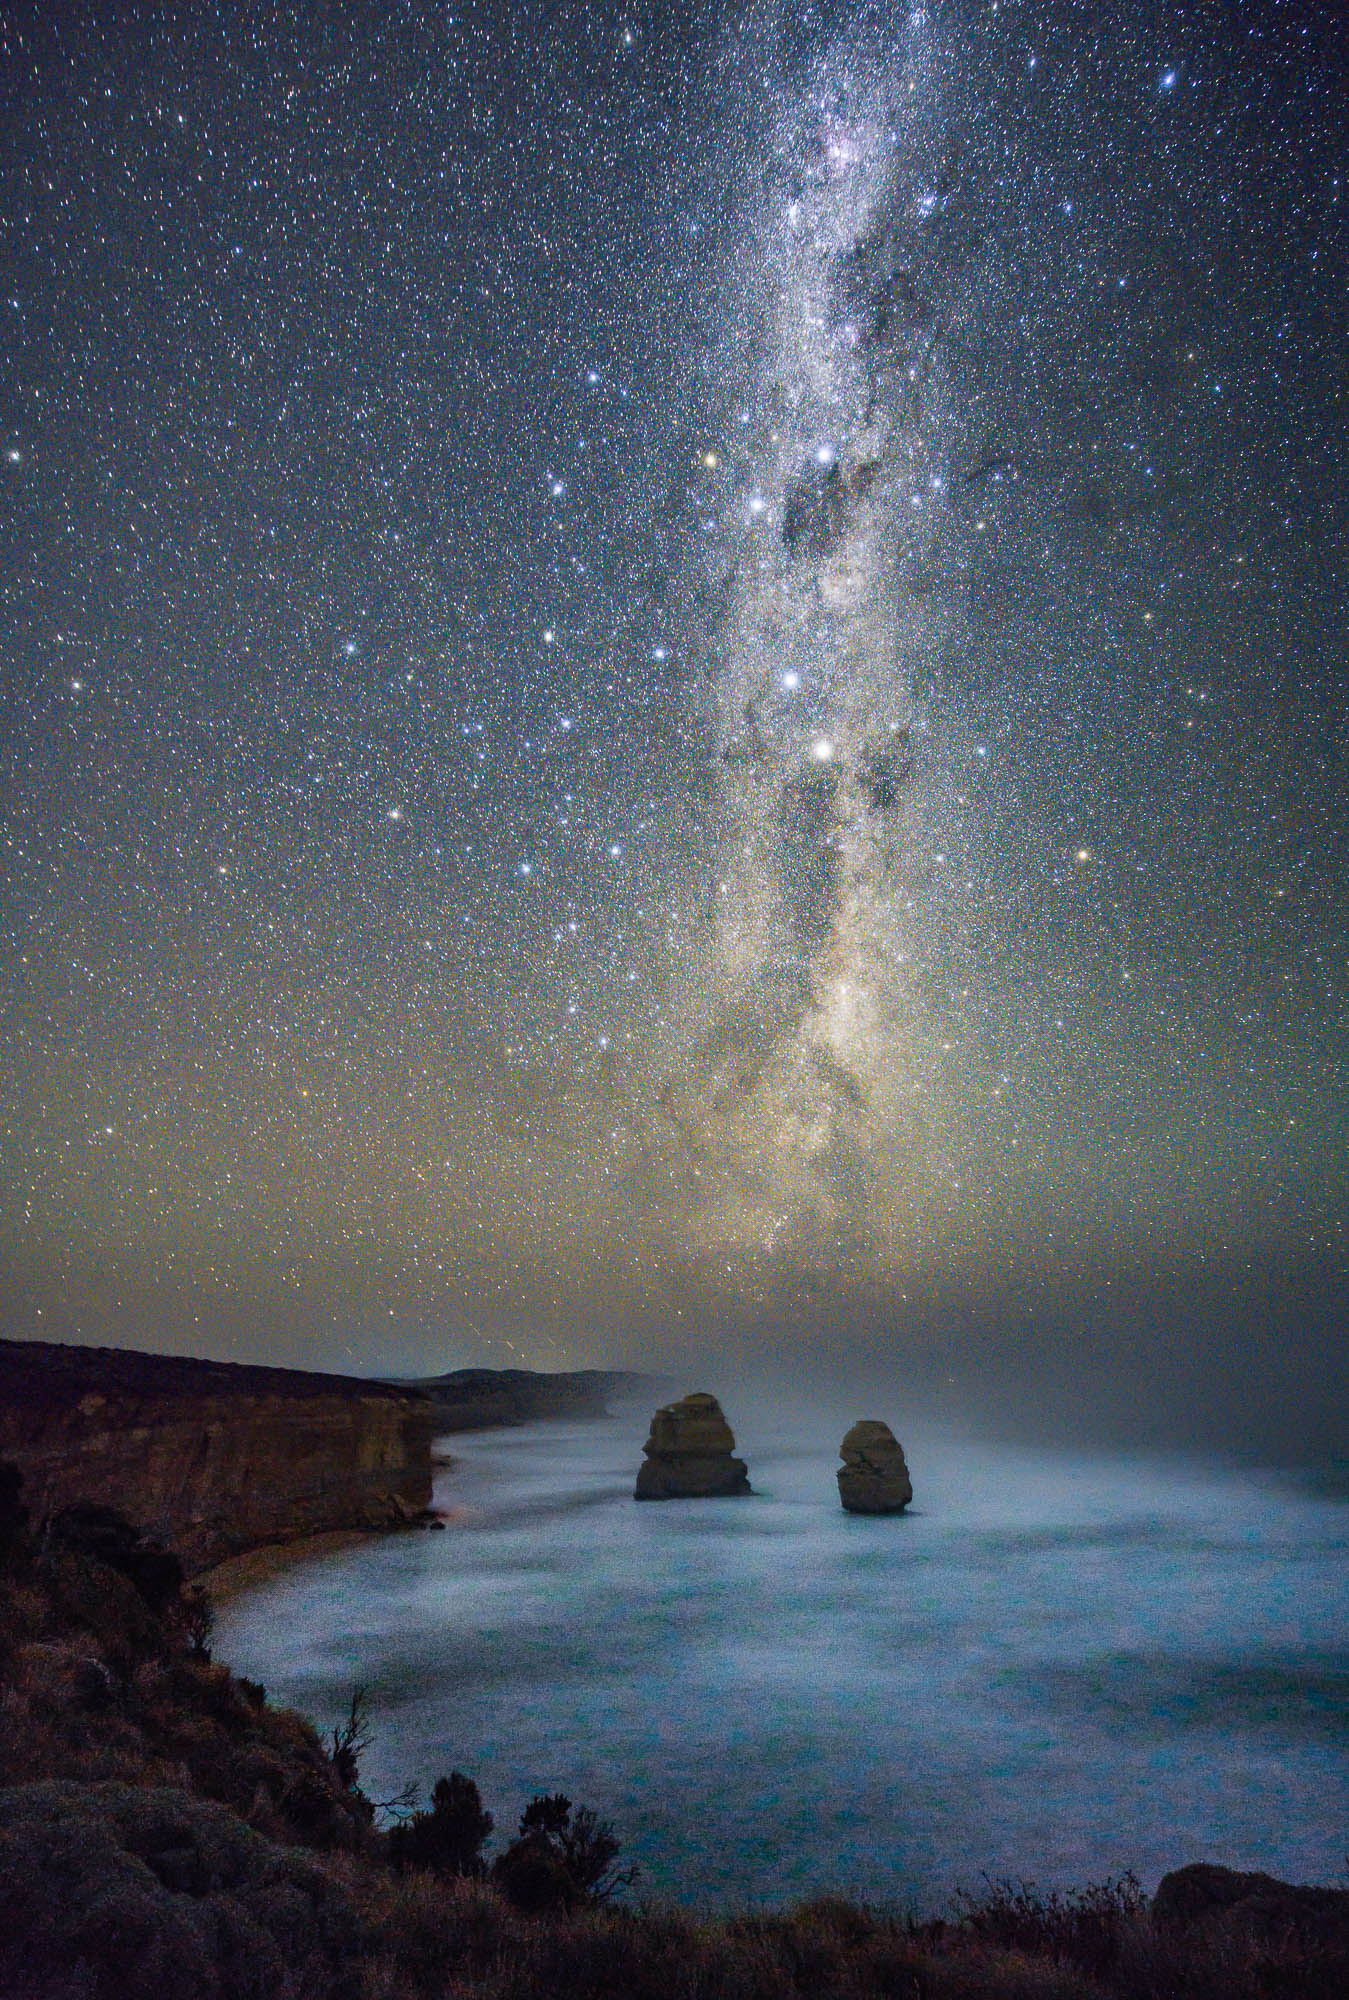 The Milky Way over Gibsons Step along the Great Ocean Road